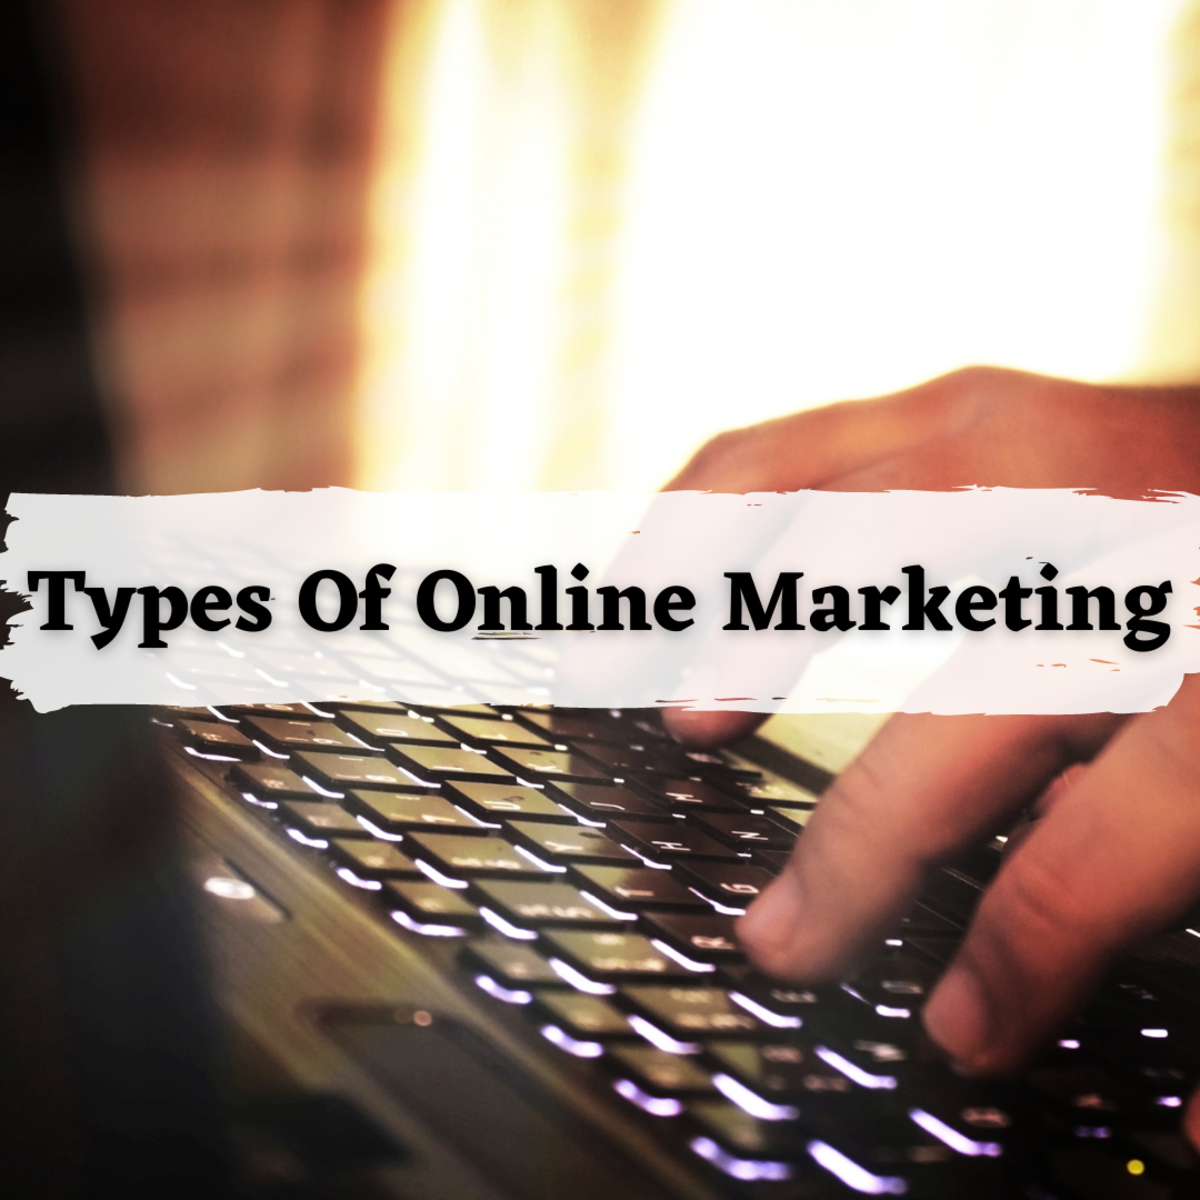 Ten Online Marketing Types That Will Actually Make Your Life Better